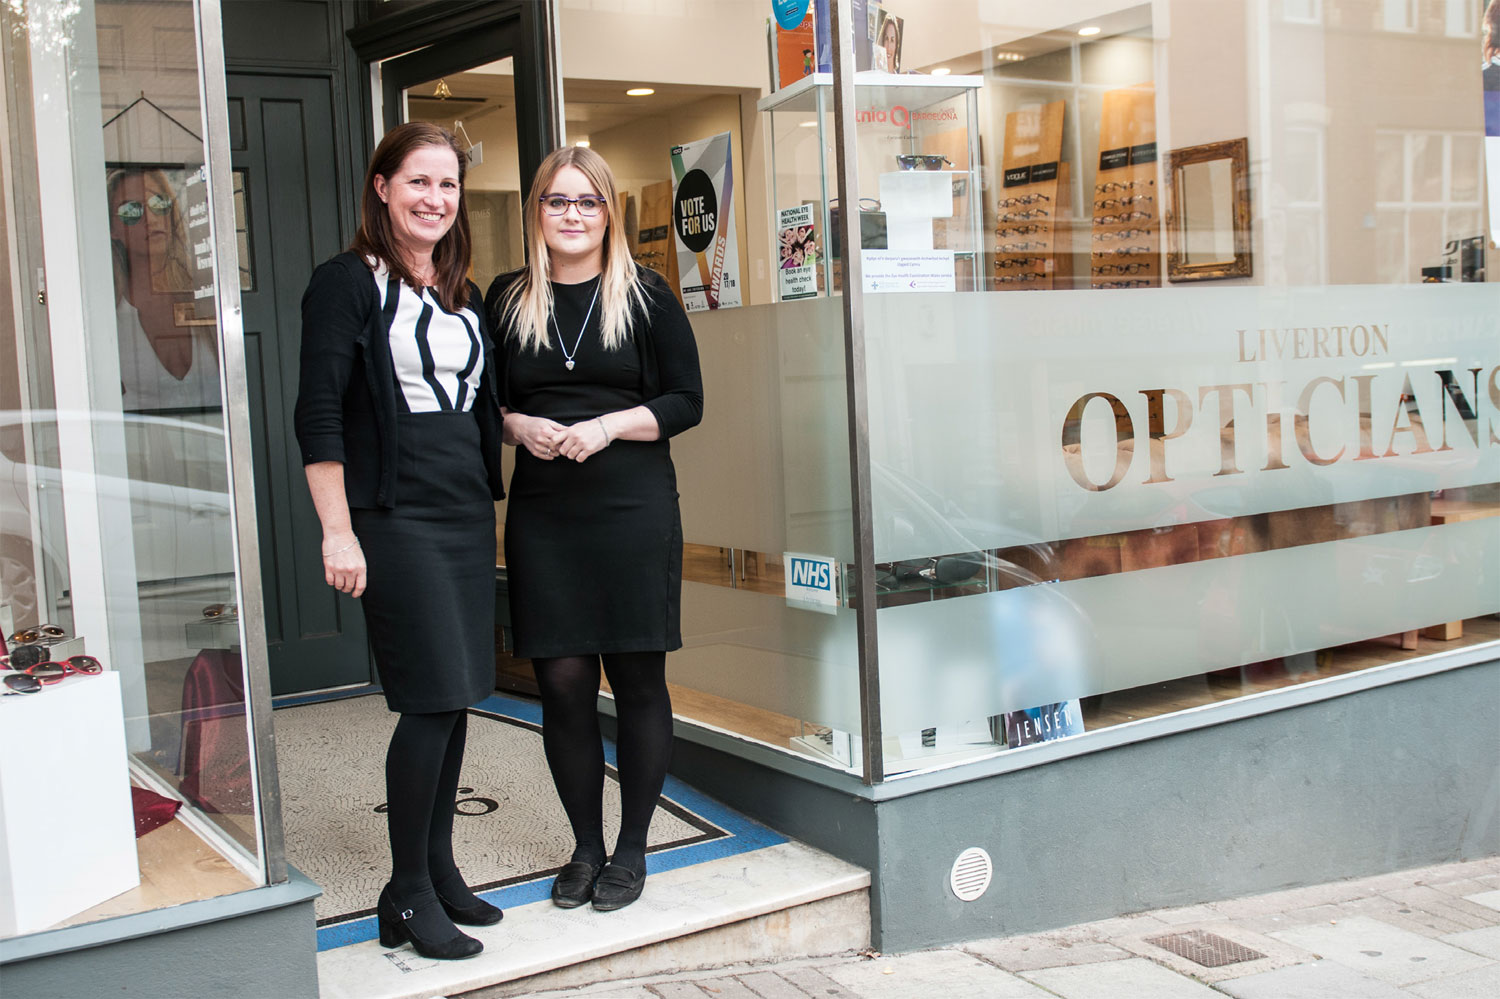 November's business of the month is Liverton Opticians